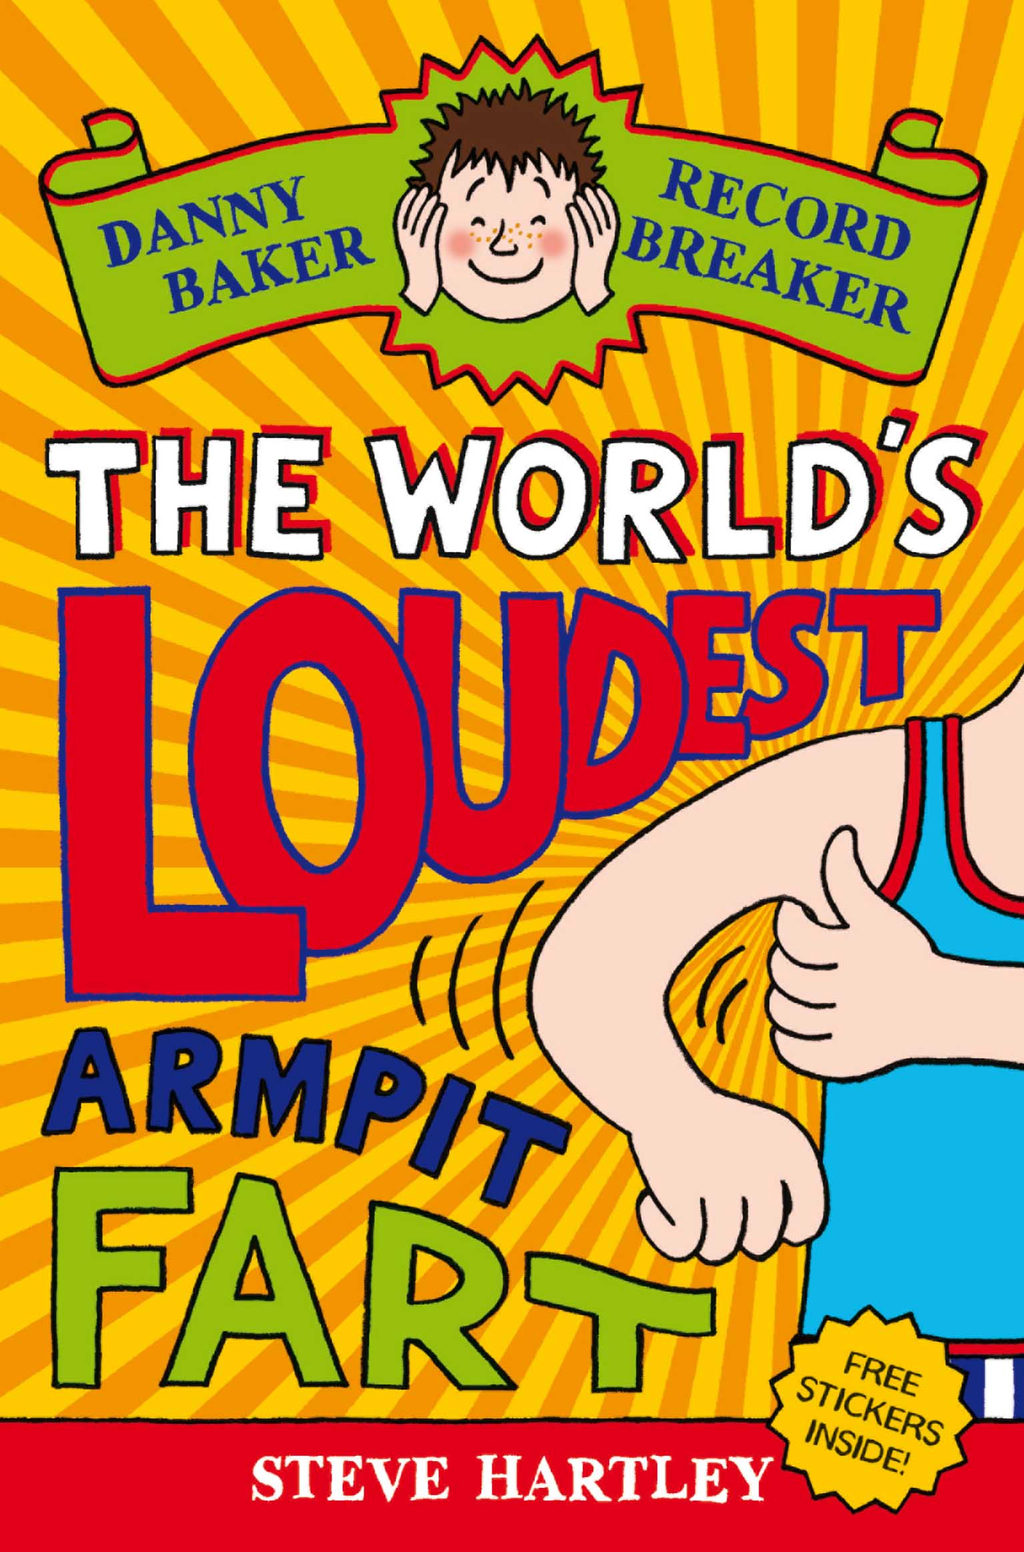 Danny Baker Record Breaker (3): The World's Loudest Armpit Fart By: Steve Hartley